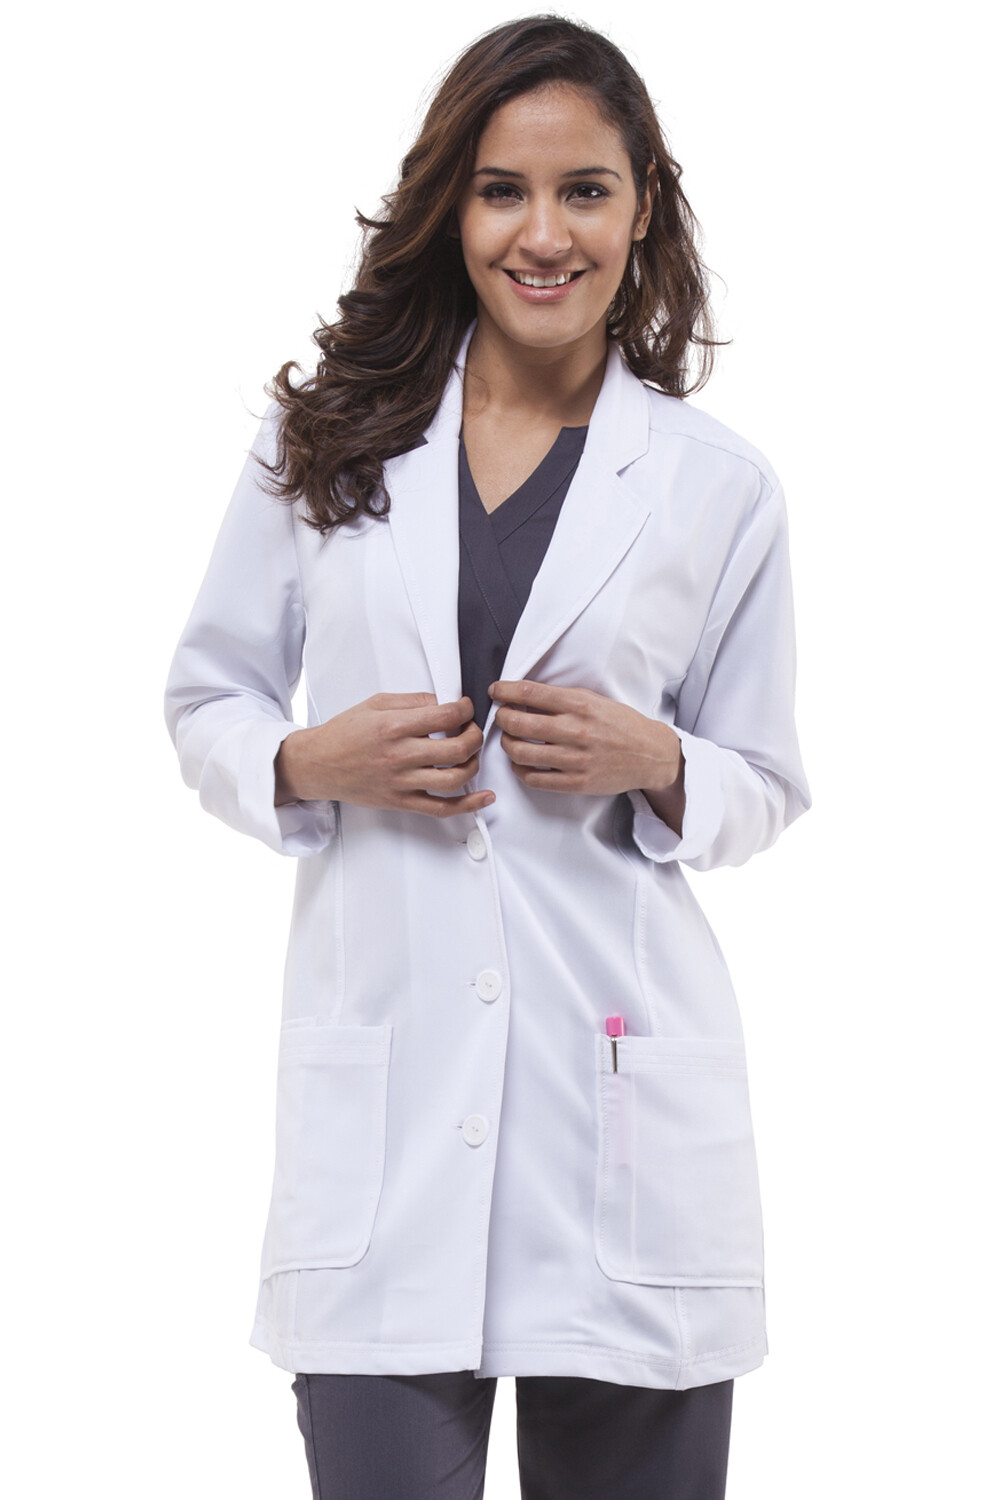 LAB COATS 5053 FAITH L